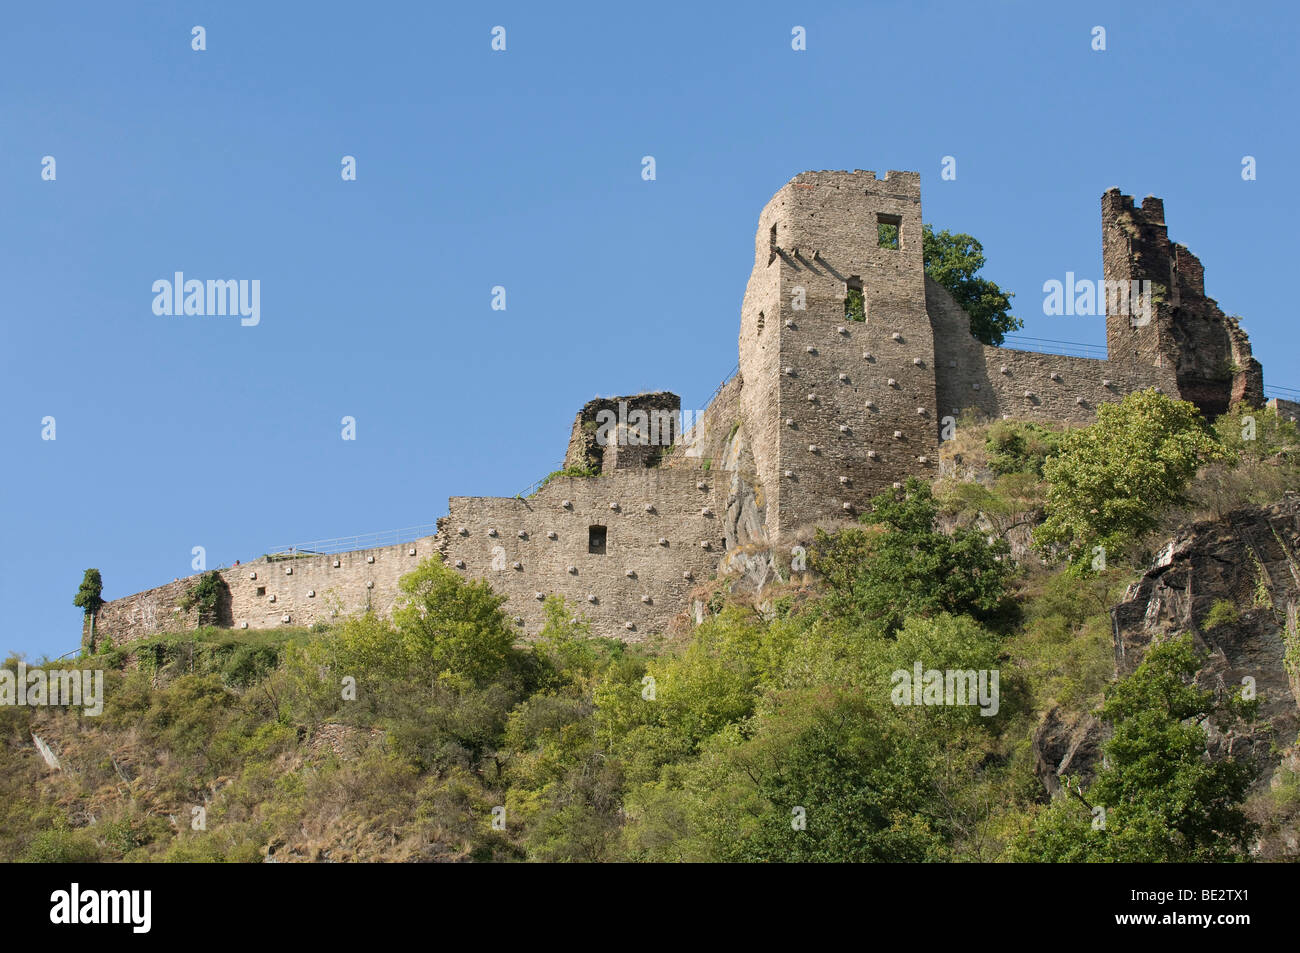 View from the Ahr on the ruins of the Burg Ahr castle, Ahrtal valley, Rhineland-Palatinate, Germany, Europe - Stock Image